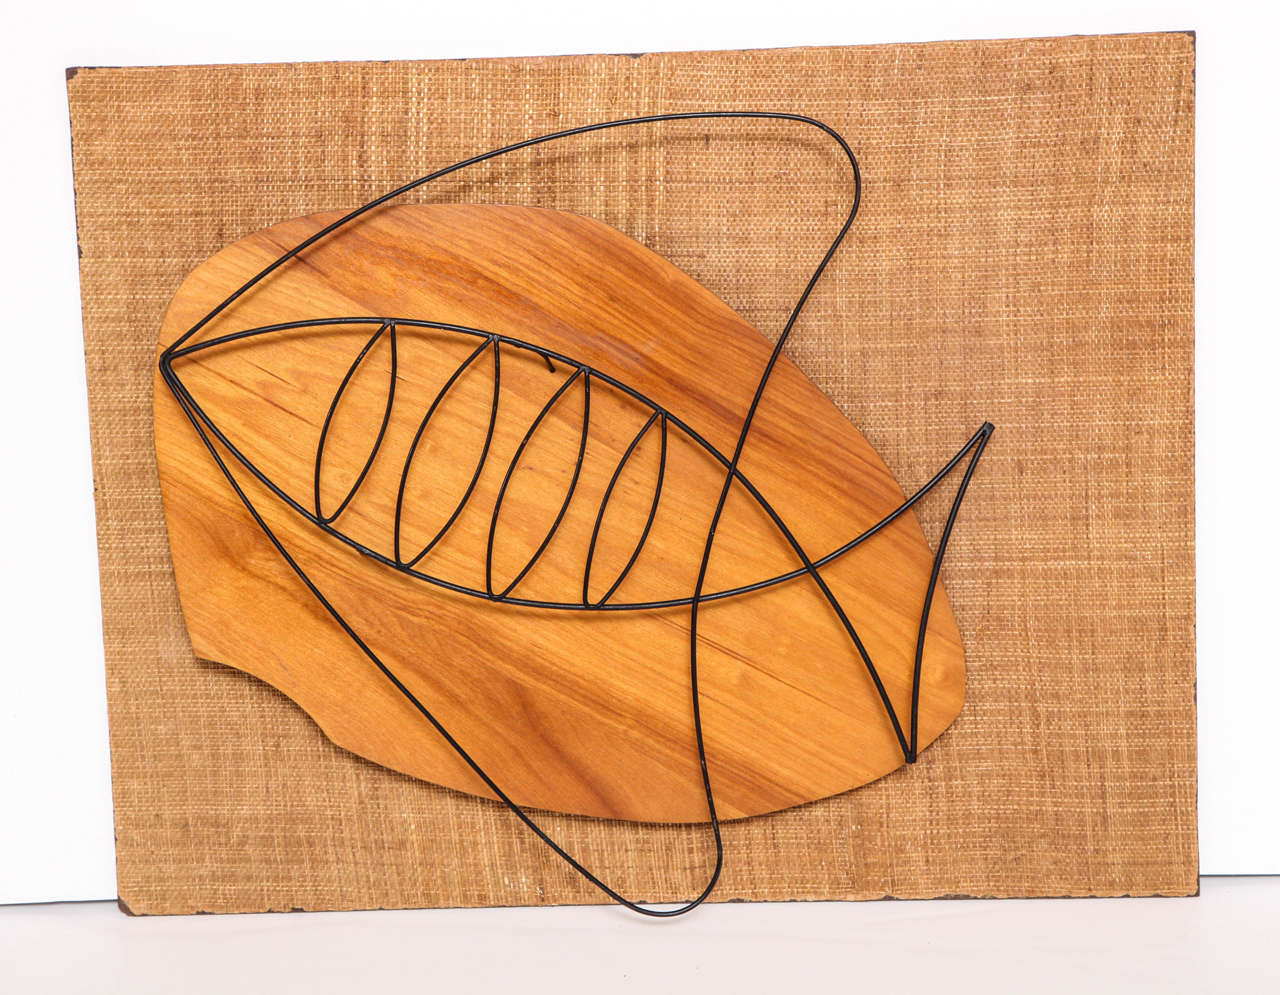 Decorative wall sculpture from circa 1950. Jute fabric backing with a wood and metal sculpture of a fish. The jute fabric has some worn off edges all around.